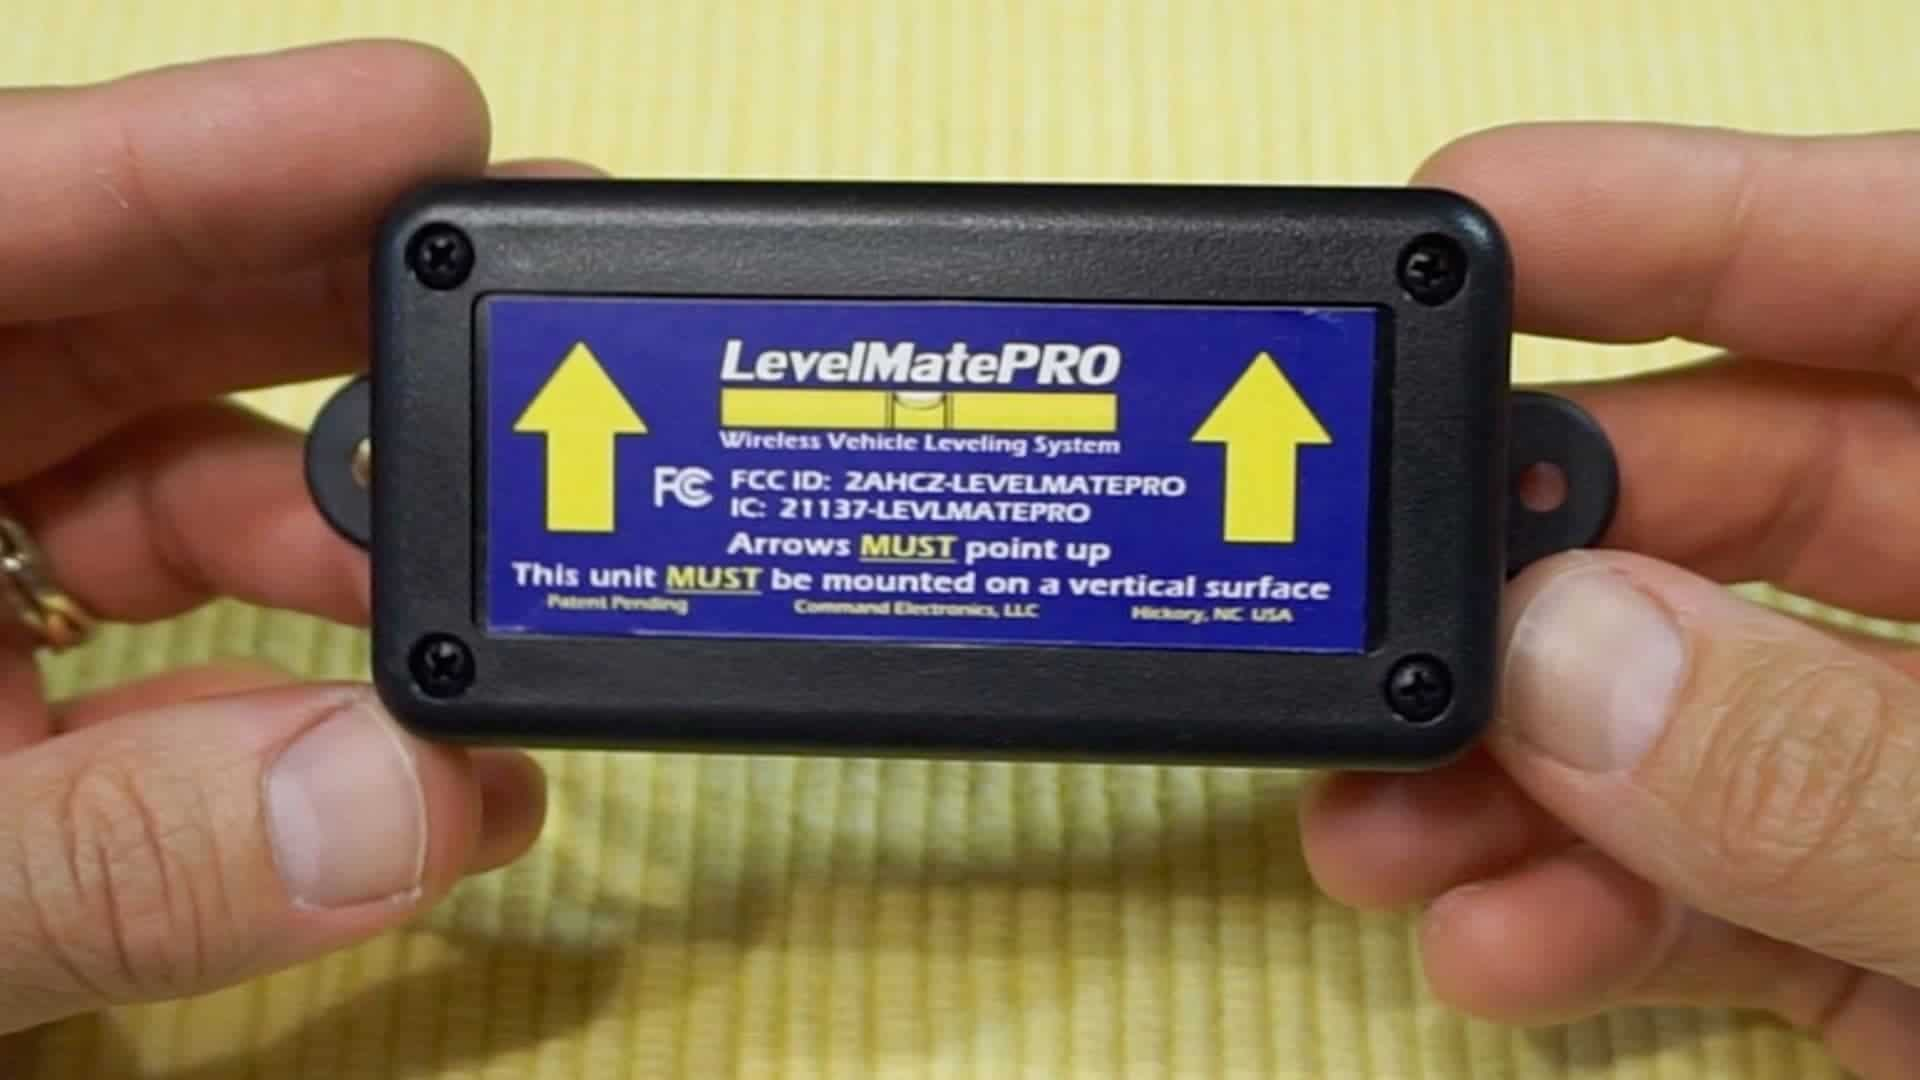 SPECIAL ALERT! LevelMatePRO Now Back In Stock! Limited Supply! Act Fast!